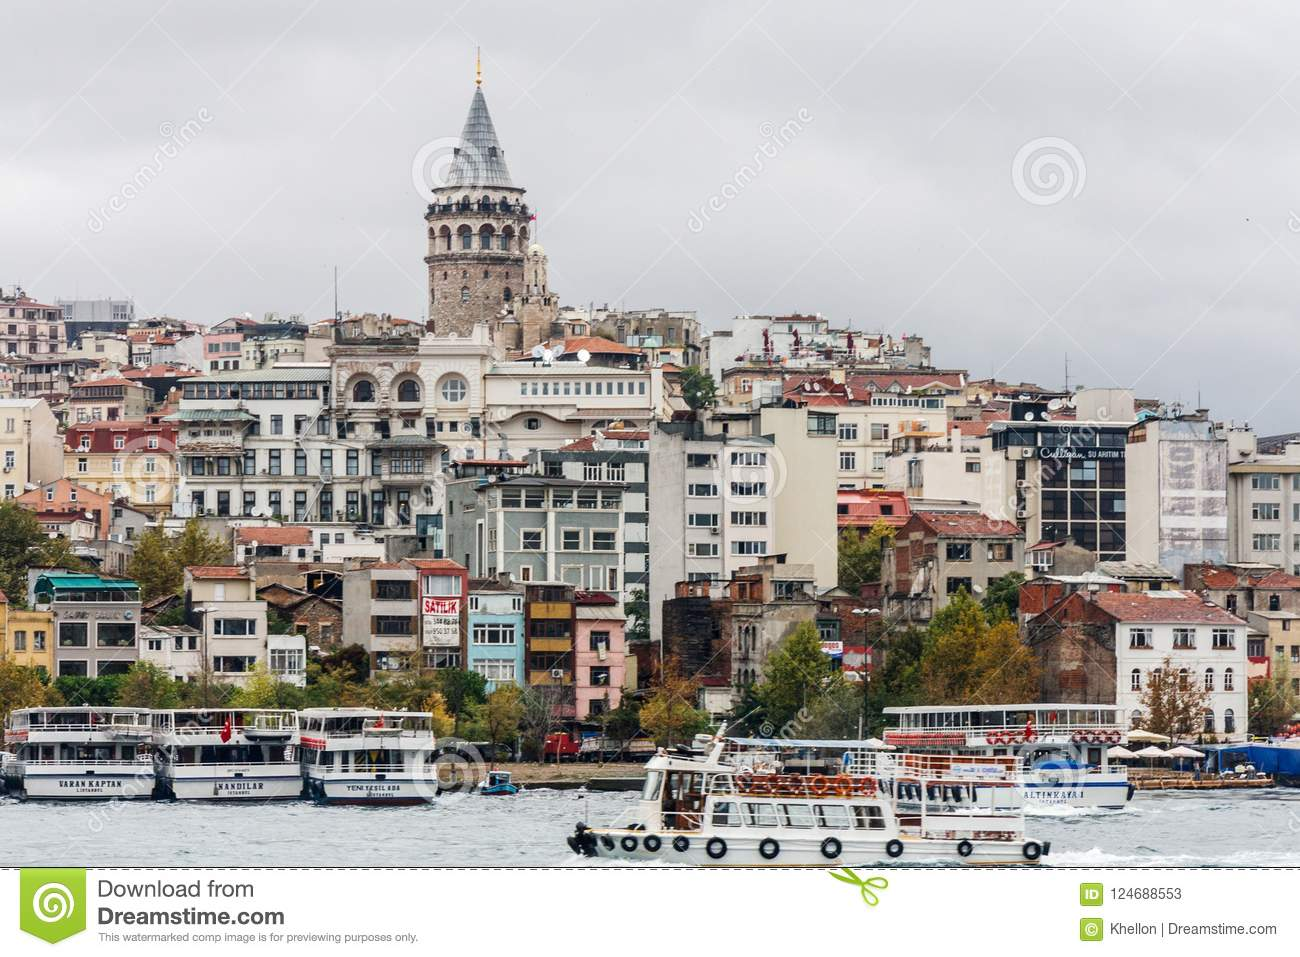 The Beyoglu tower